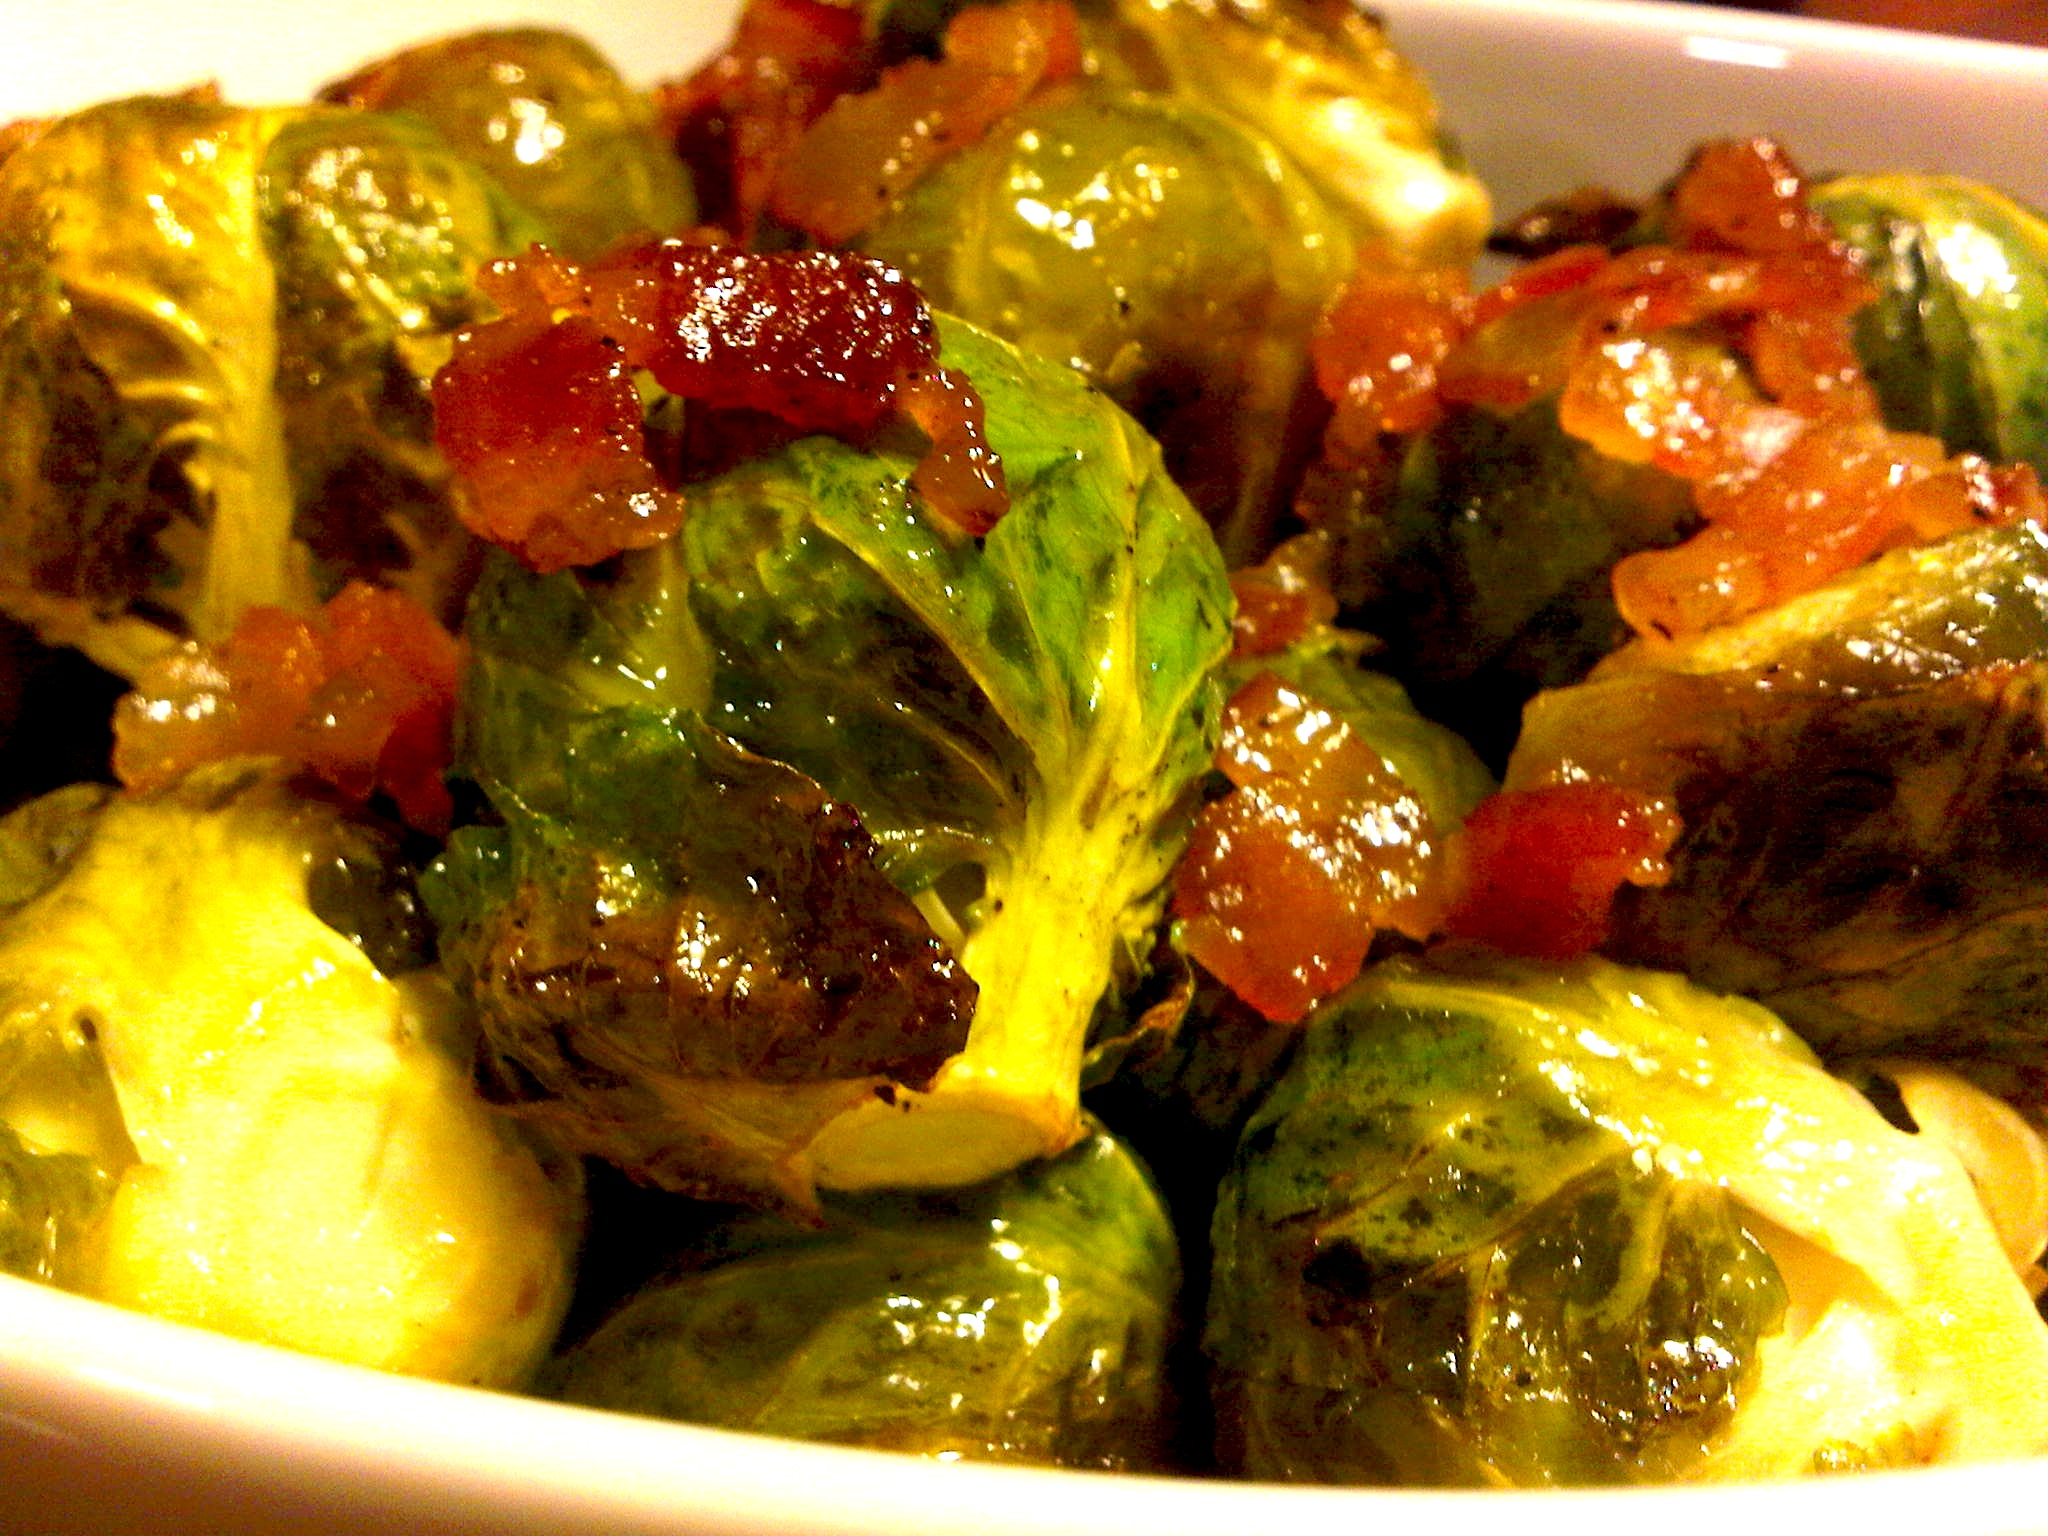 Brussel Sprout Recipes With Bacon Maple Syrup